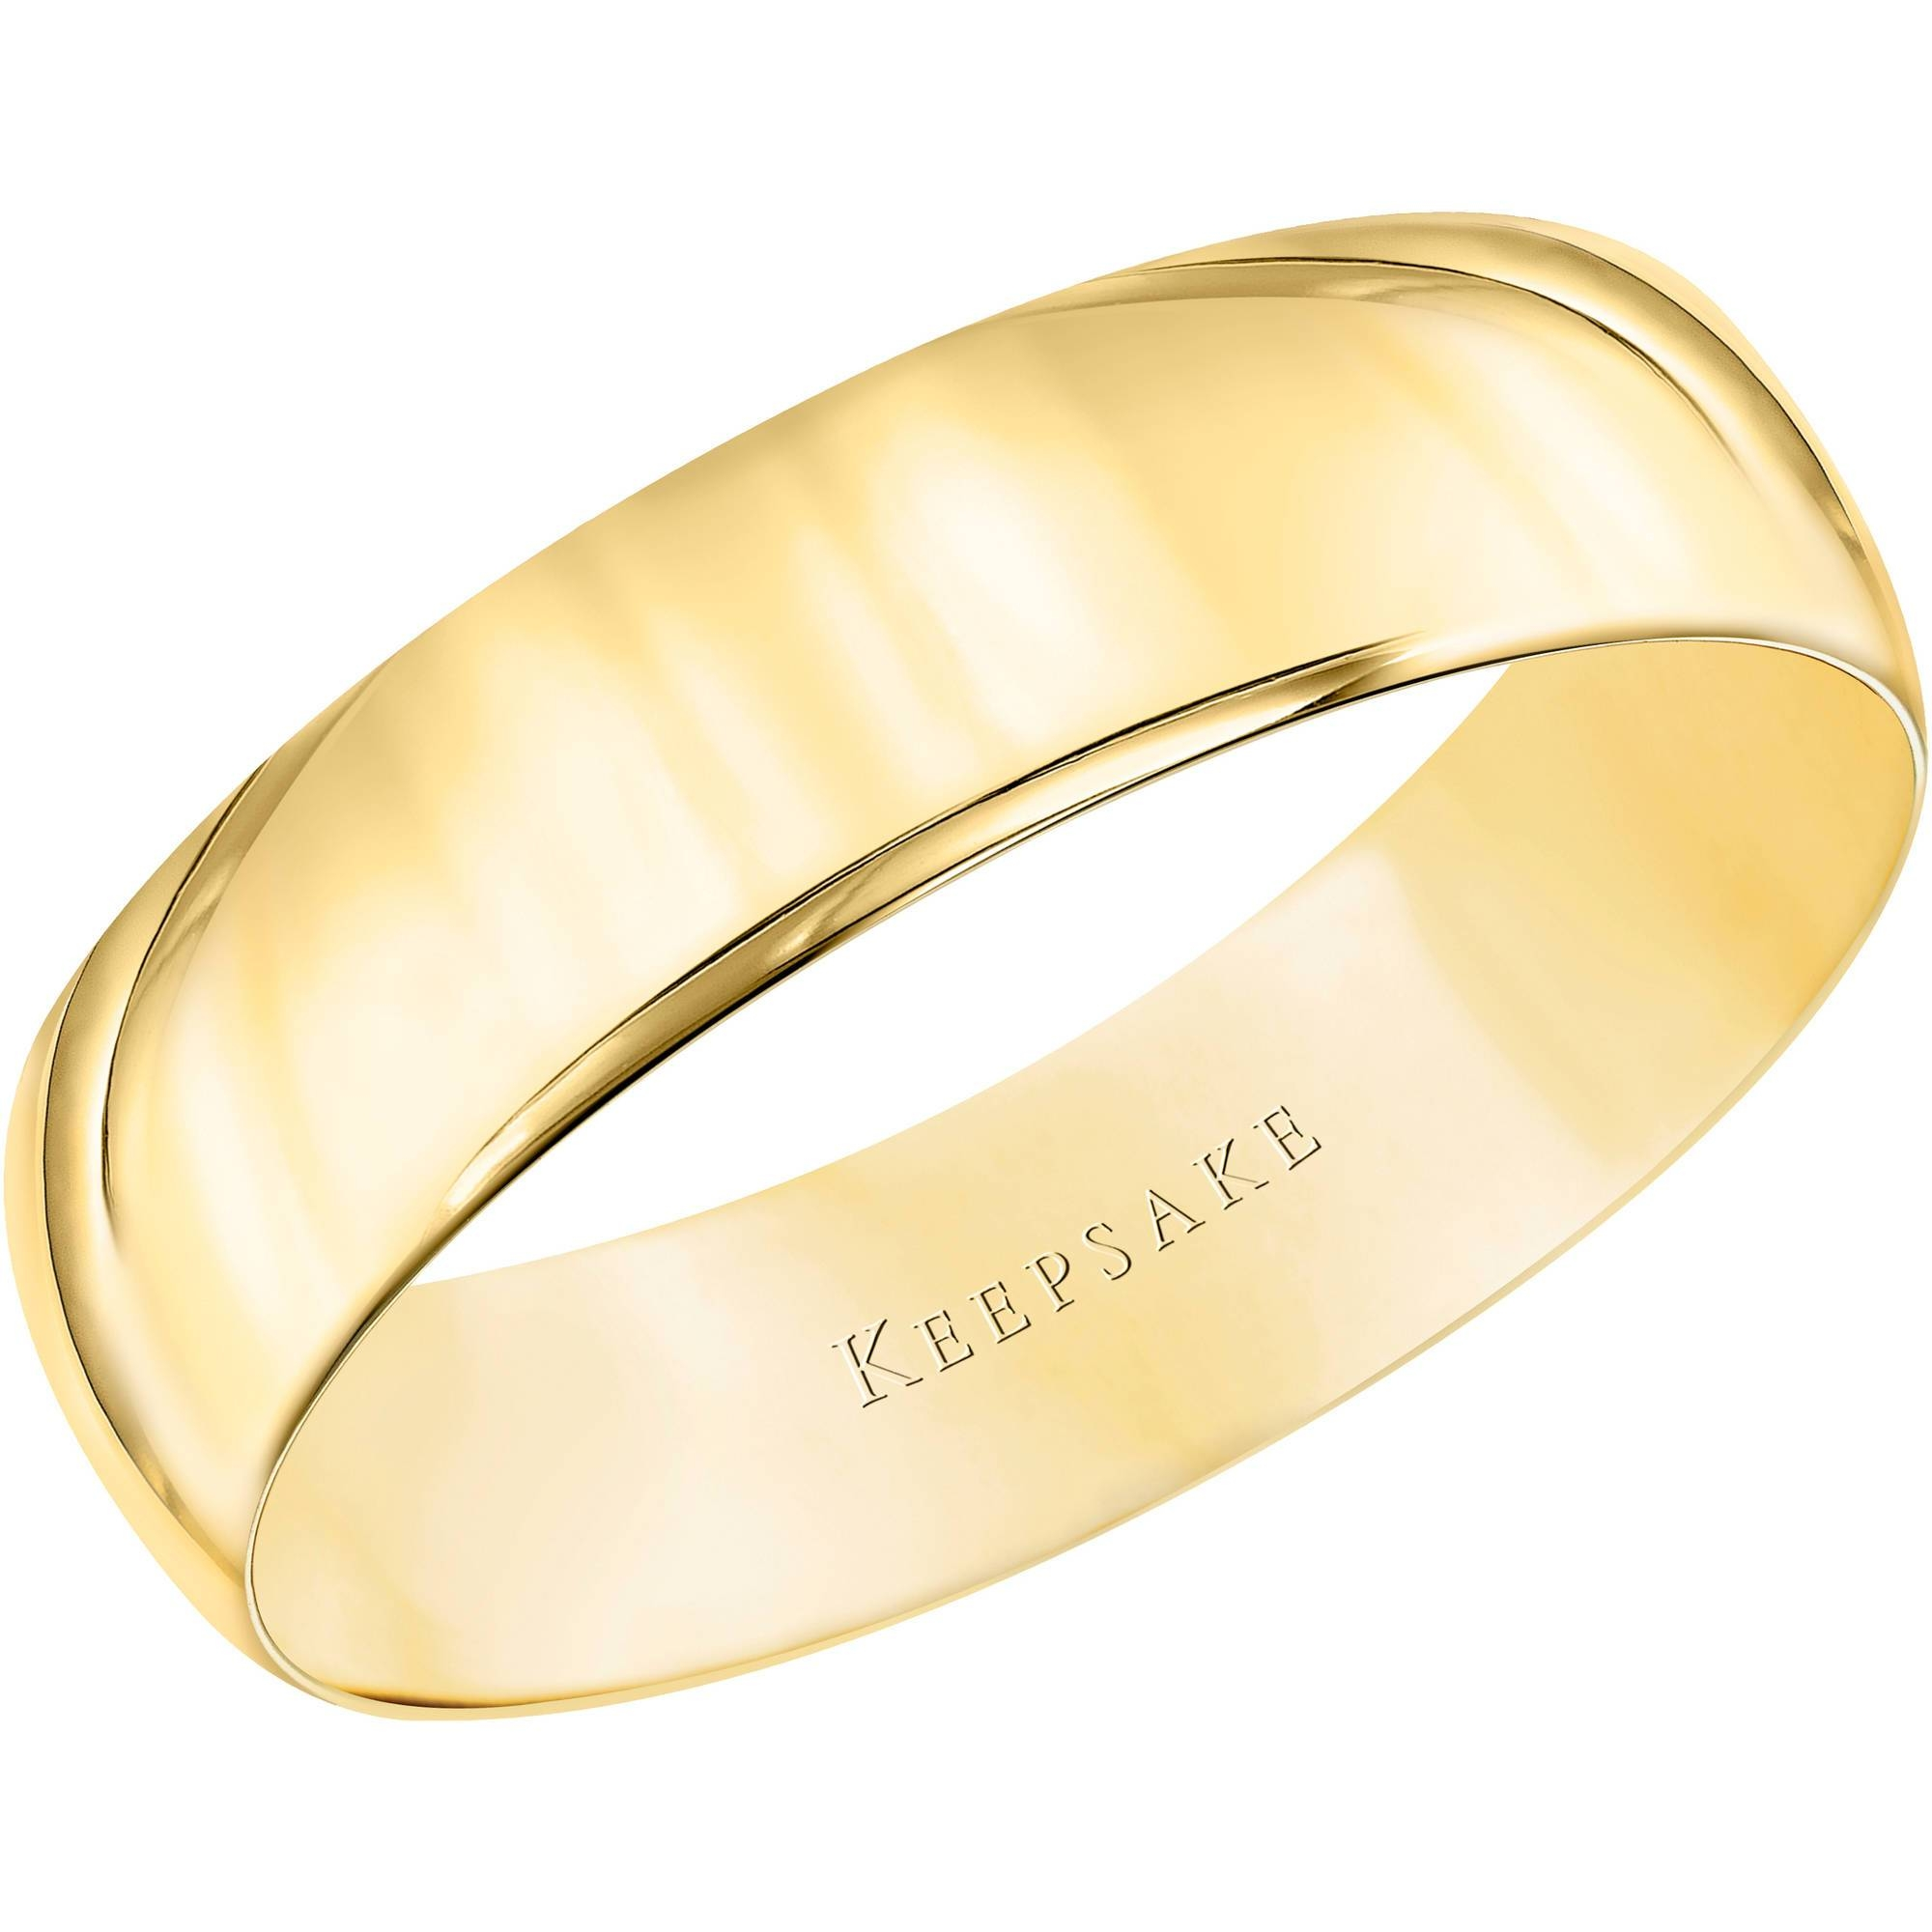 Keepsake 10Kt Yellow Gold Wedding Band With High Polish Finish Pertaining To 14 Carat Gold Wedding Bands (Gallery 14 of 15)